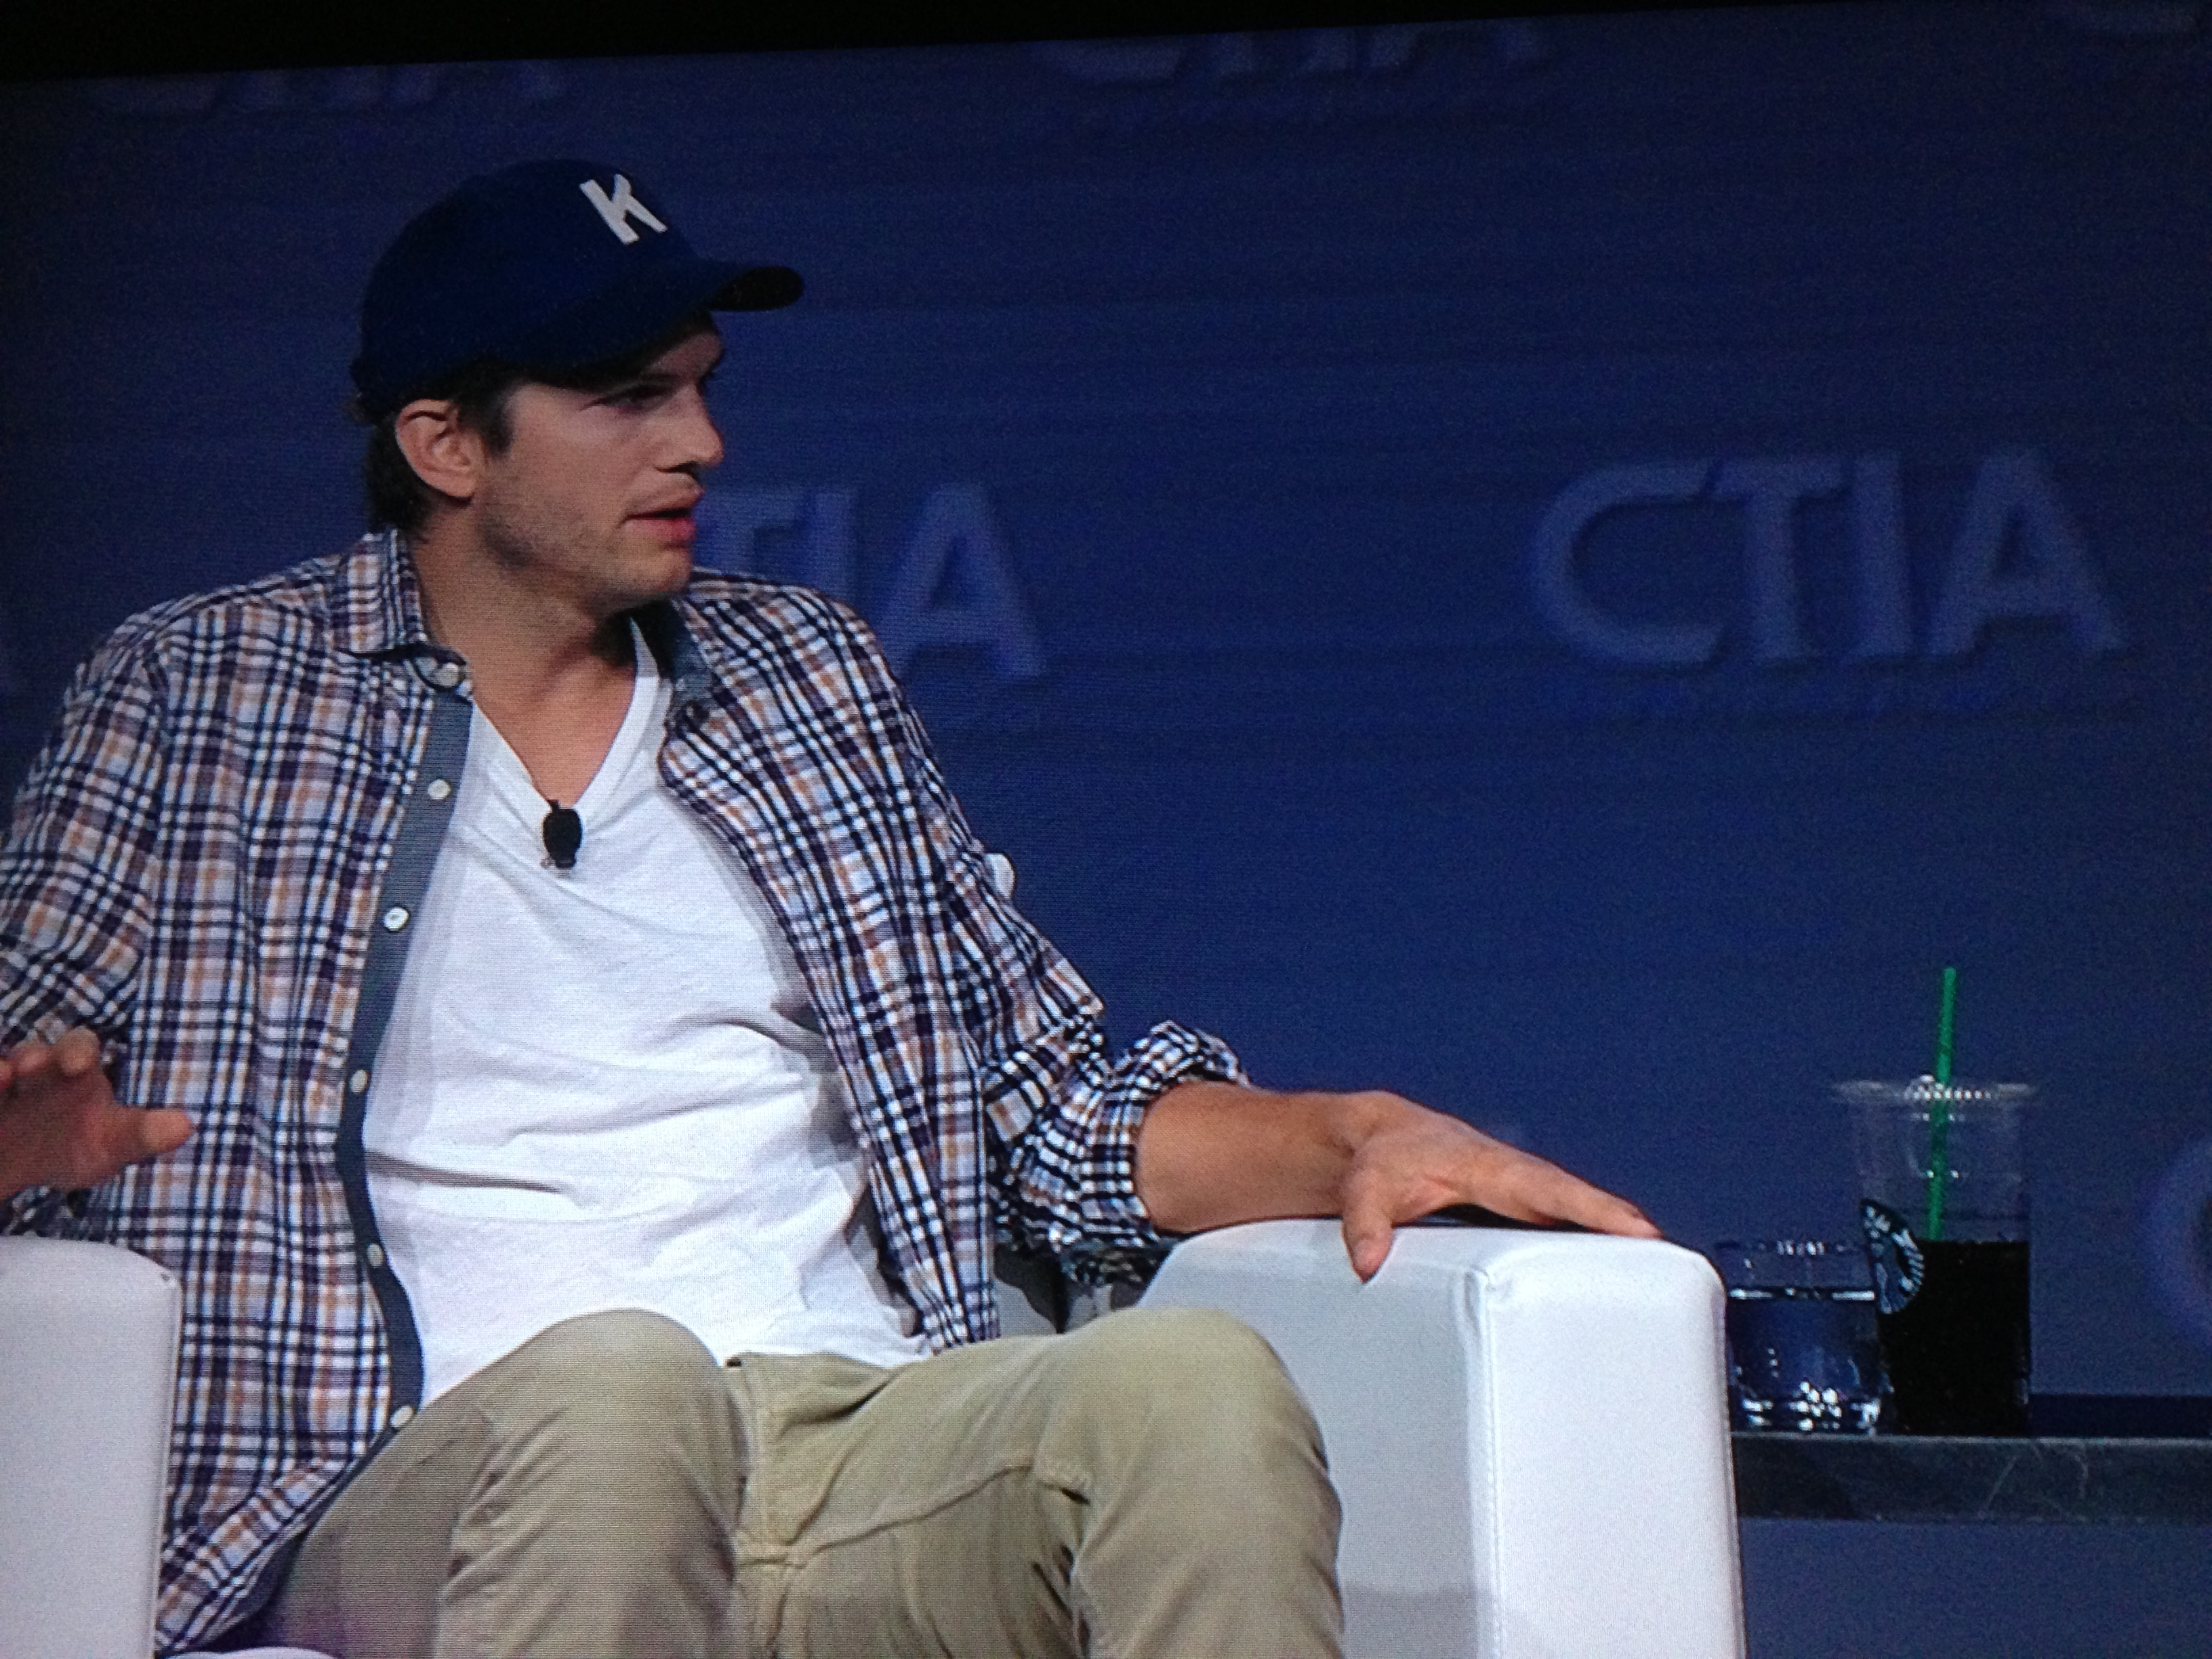 Ashton Kutcher Dishes on the Mobile Market and What's on His Phone